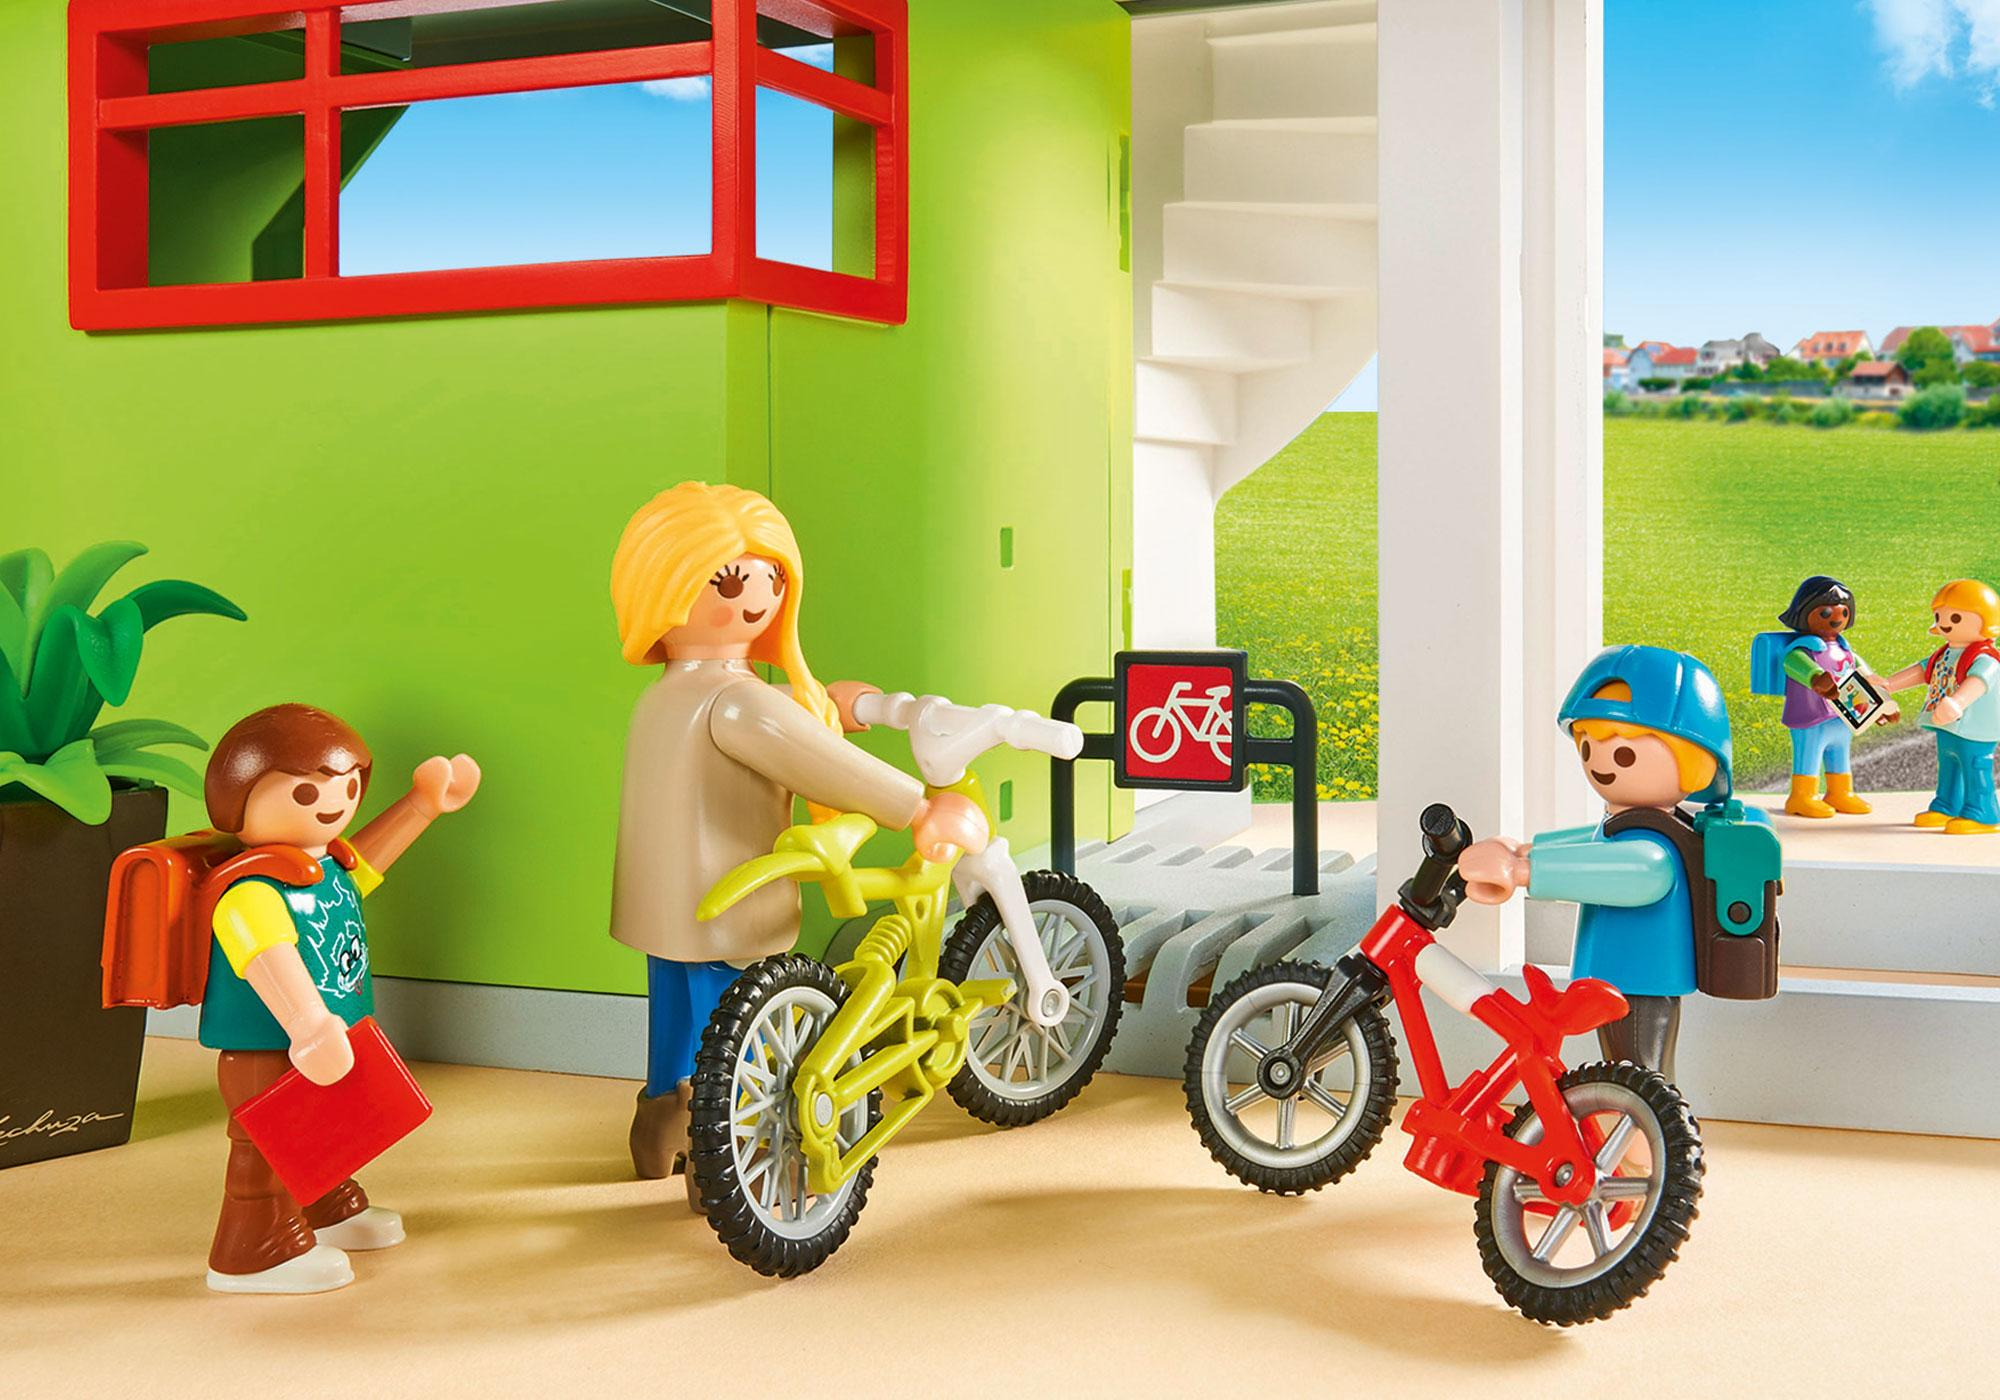 http://media.playmobil.com/i/playmobil/9453_product_extra4/Große Schule mit Einrichtung